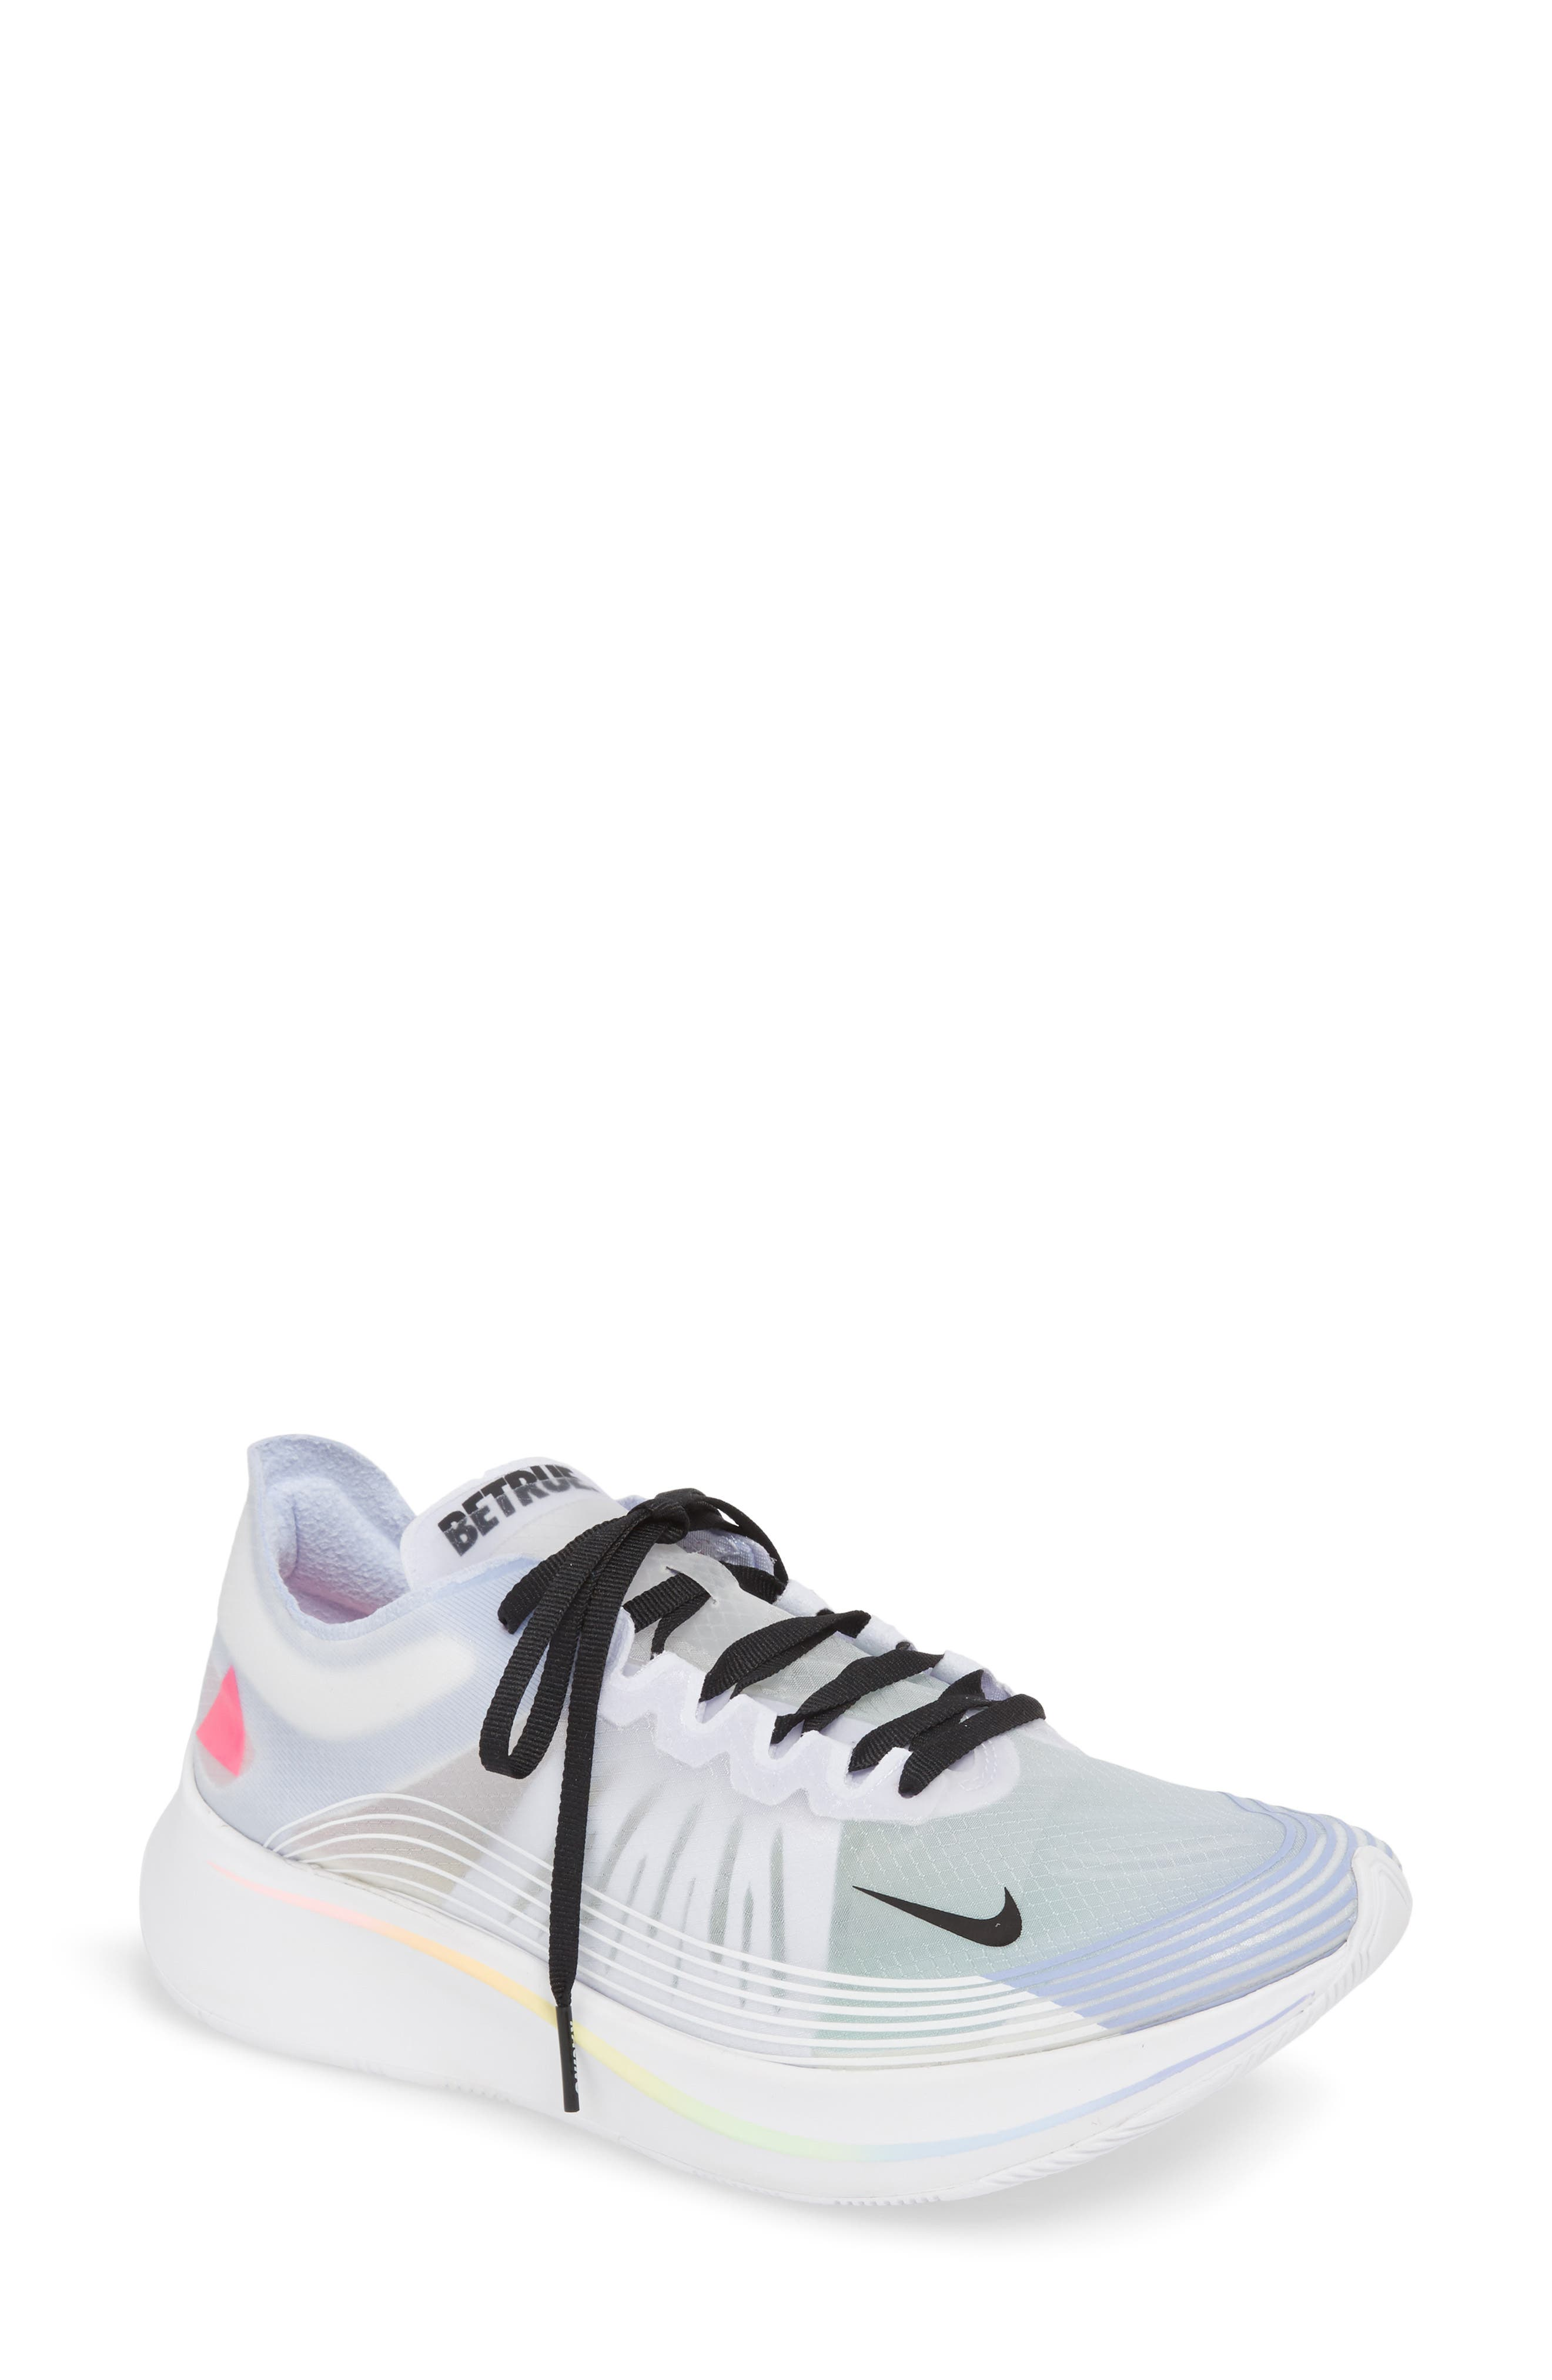 Nordstrom x Nike Zoom Fly BETRUE Running Shoe,                             Main thumbnail 1, color,                             105